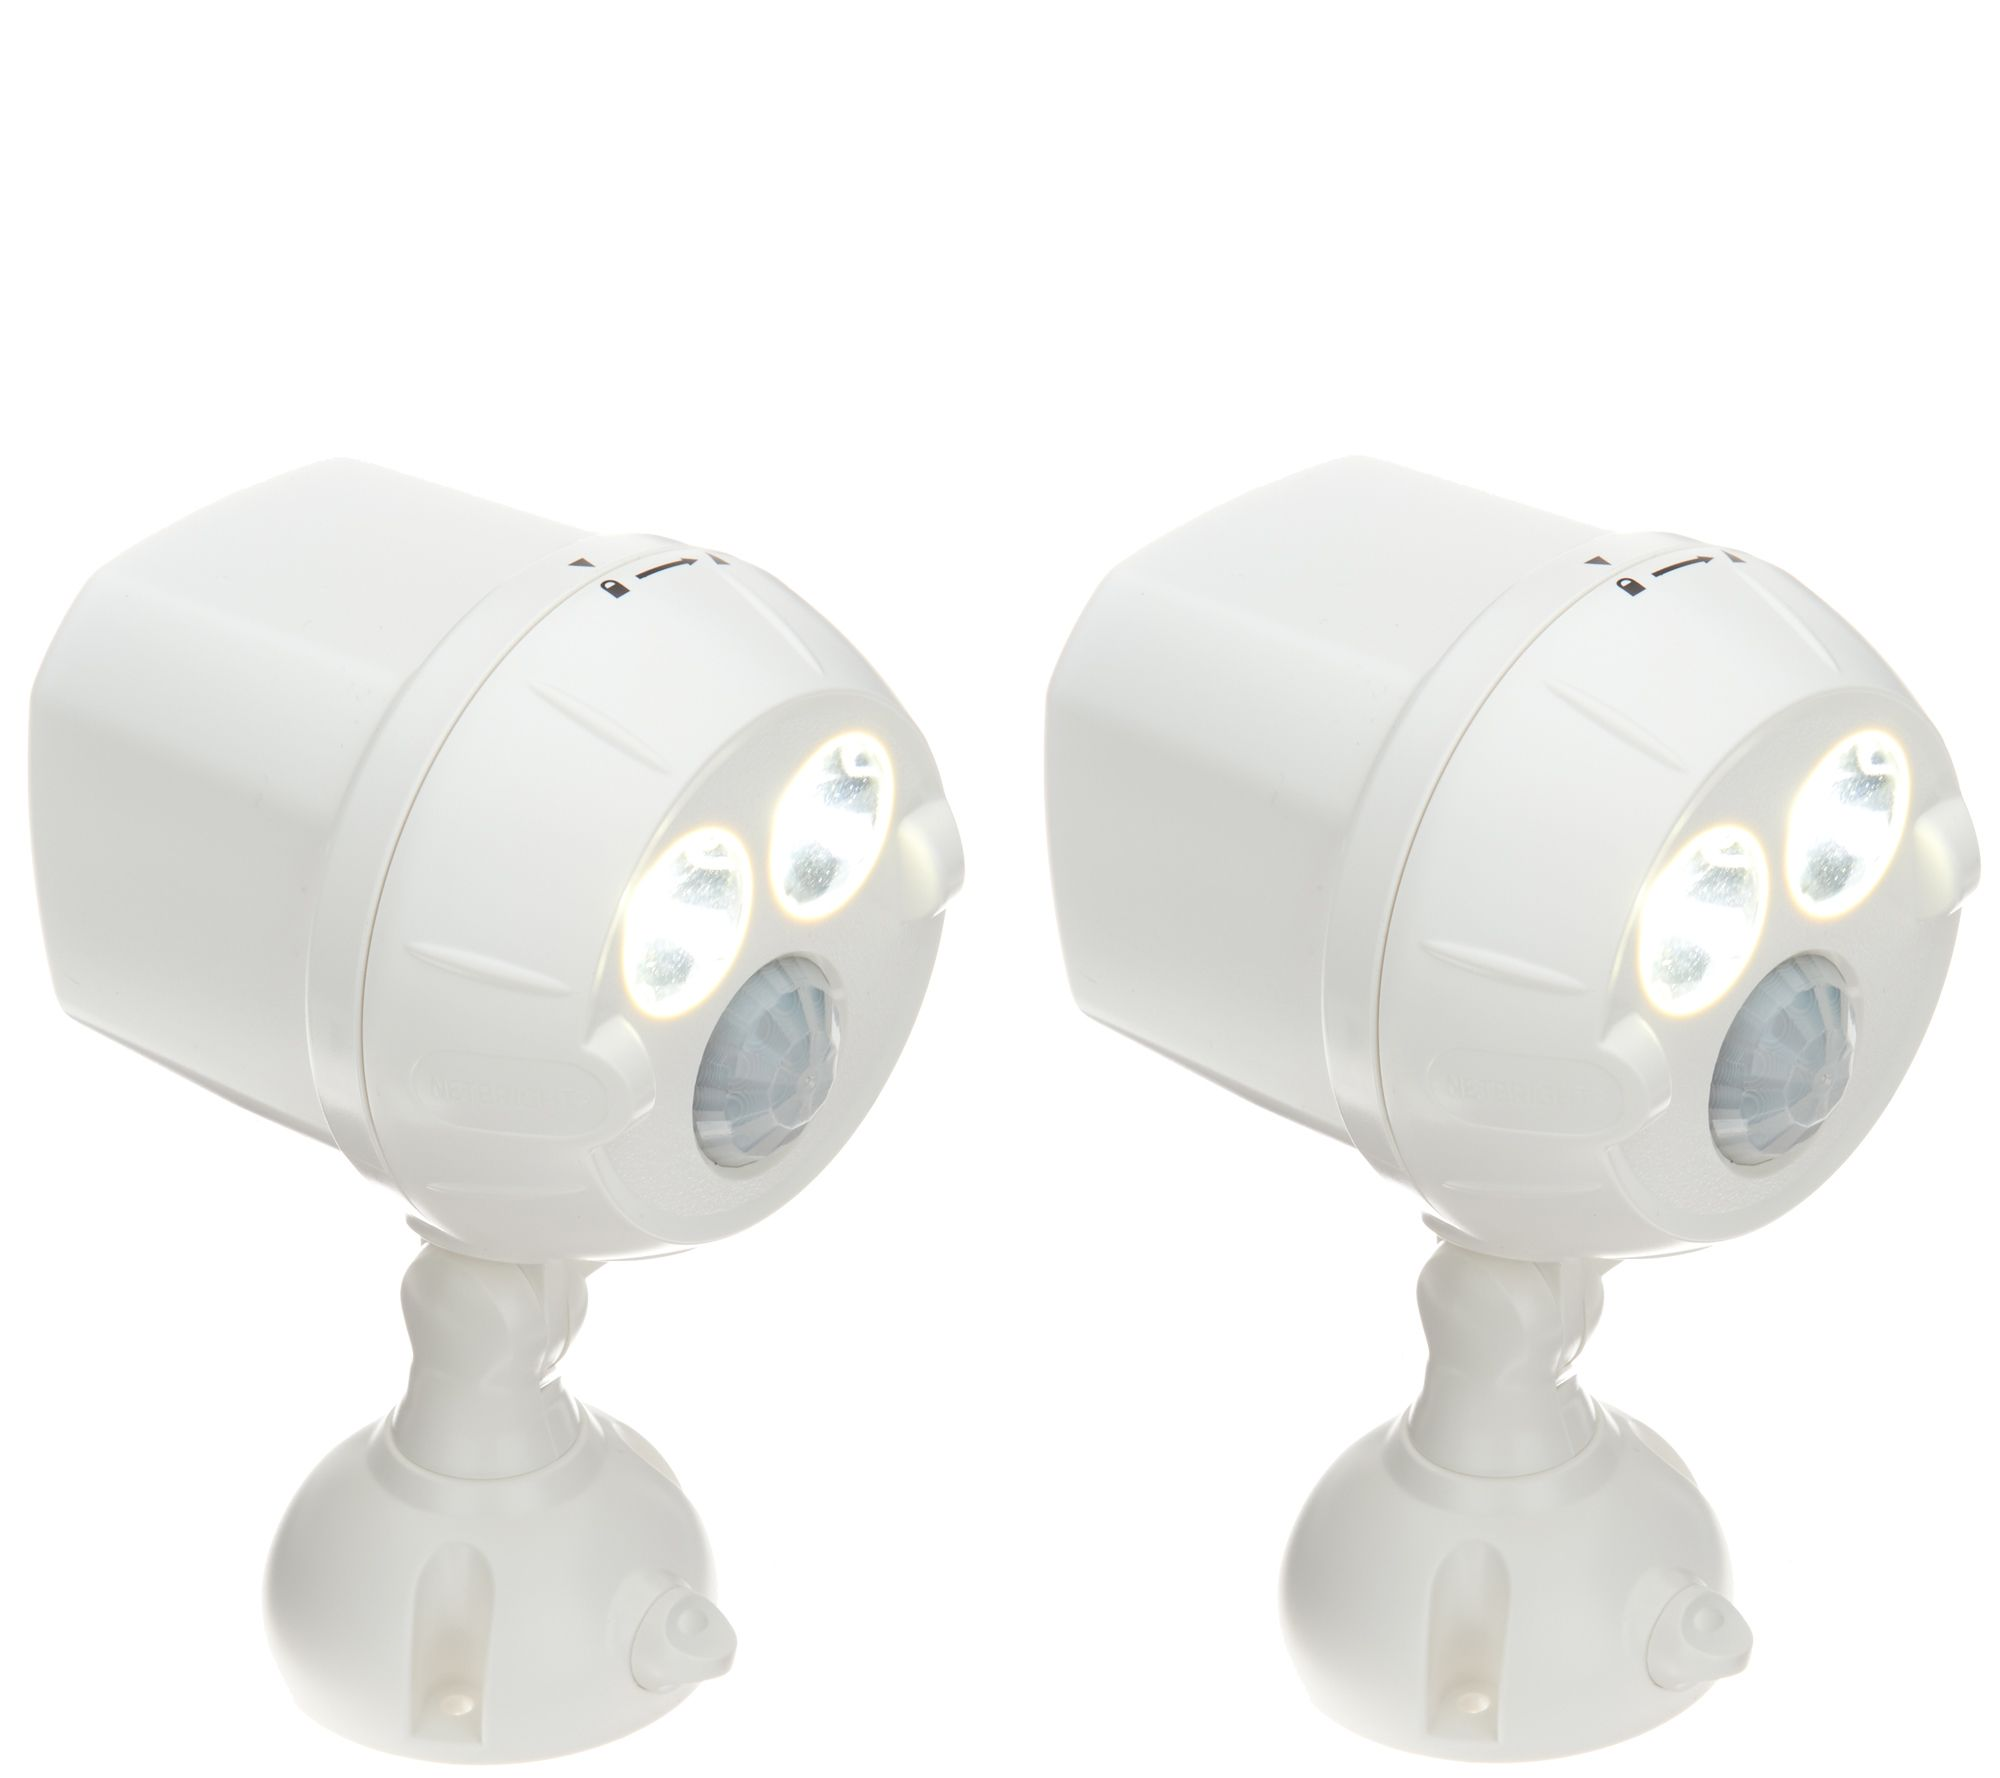 Mr Beams 2 450 Lumen Netbright Security Motion